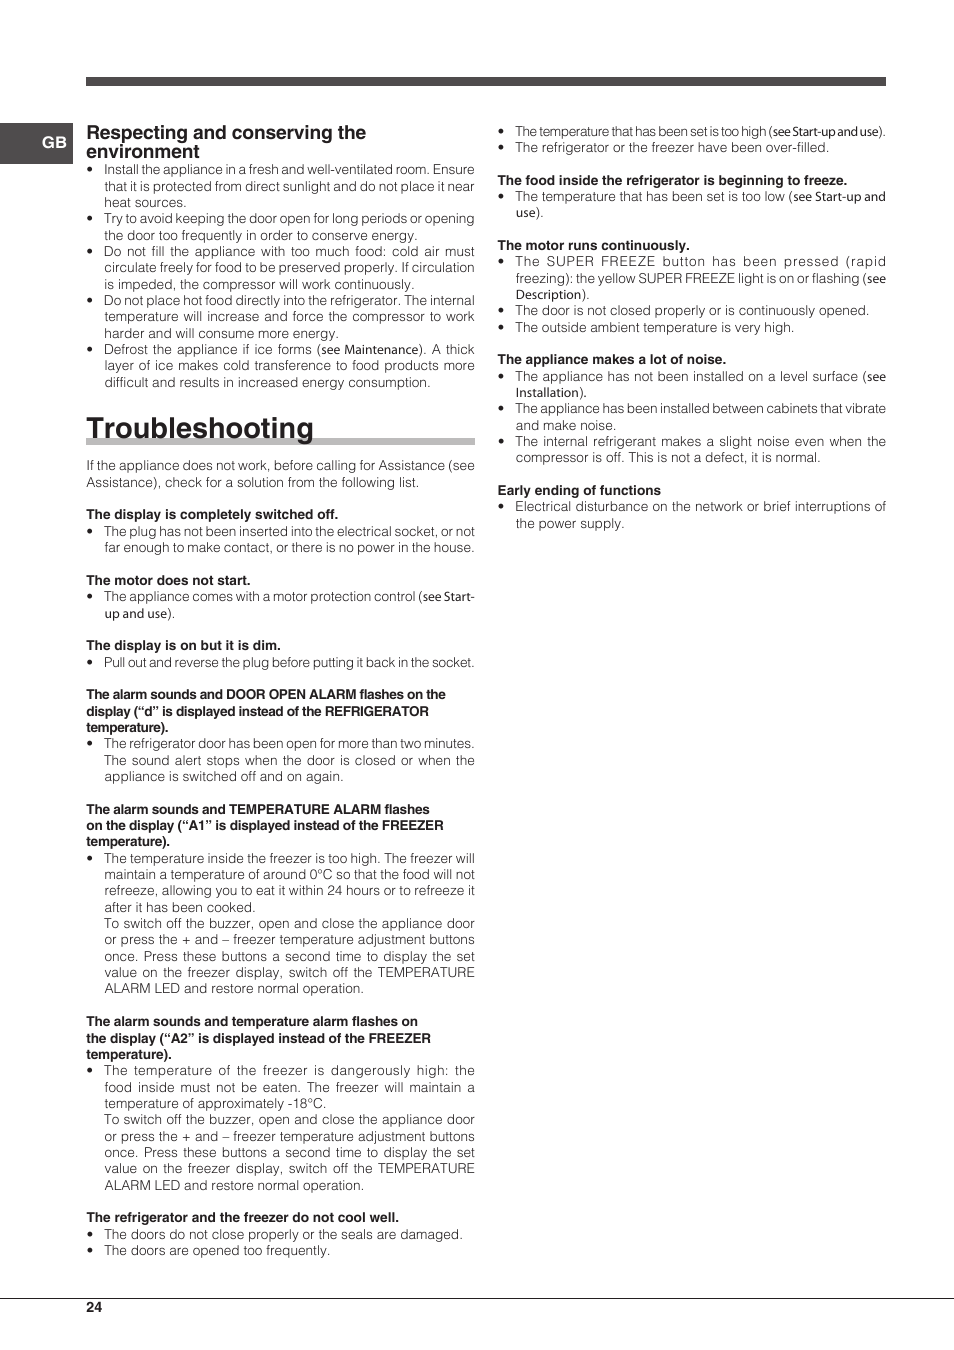 Troubleshooting, Respecting and conserving the environment   Indesit